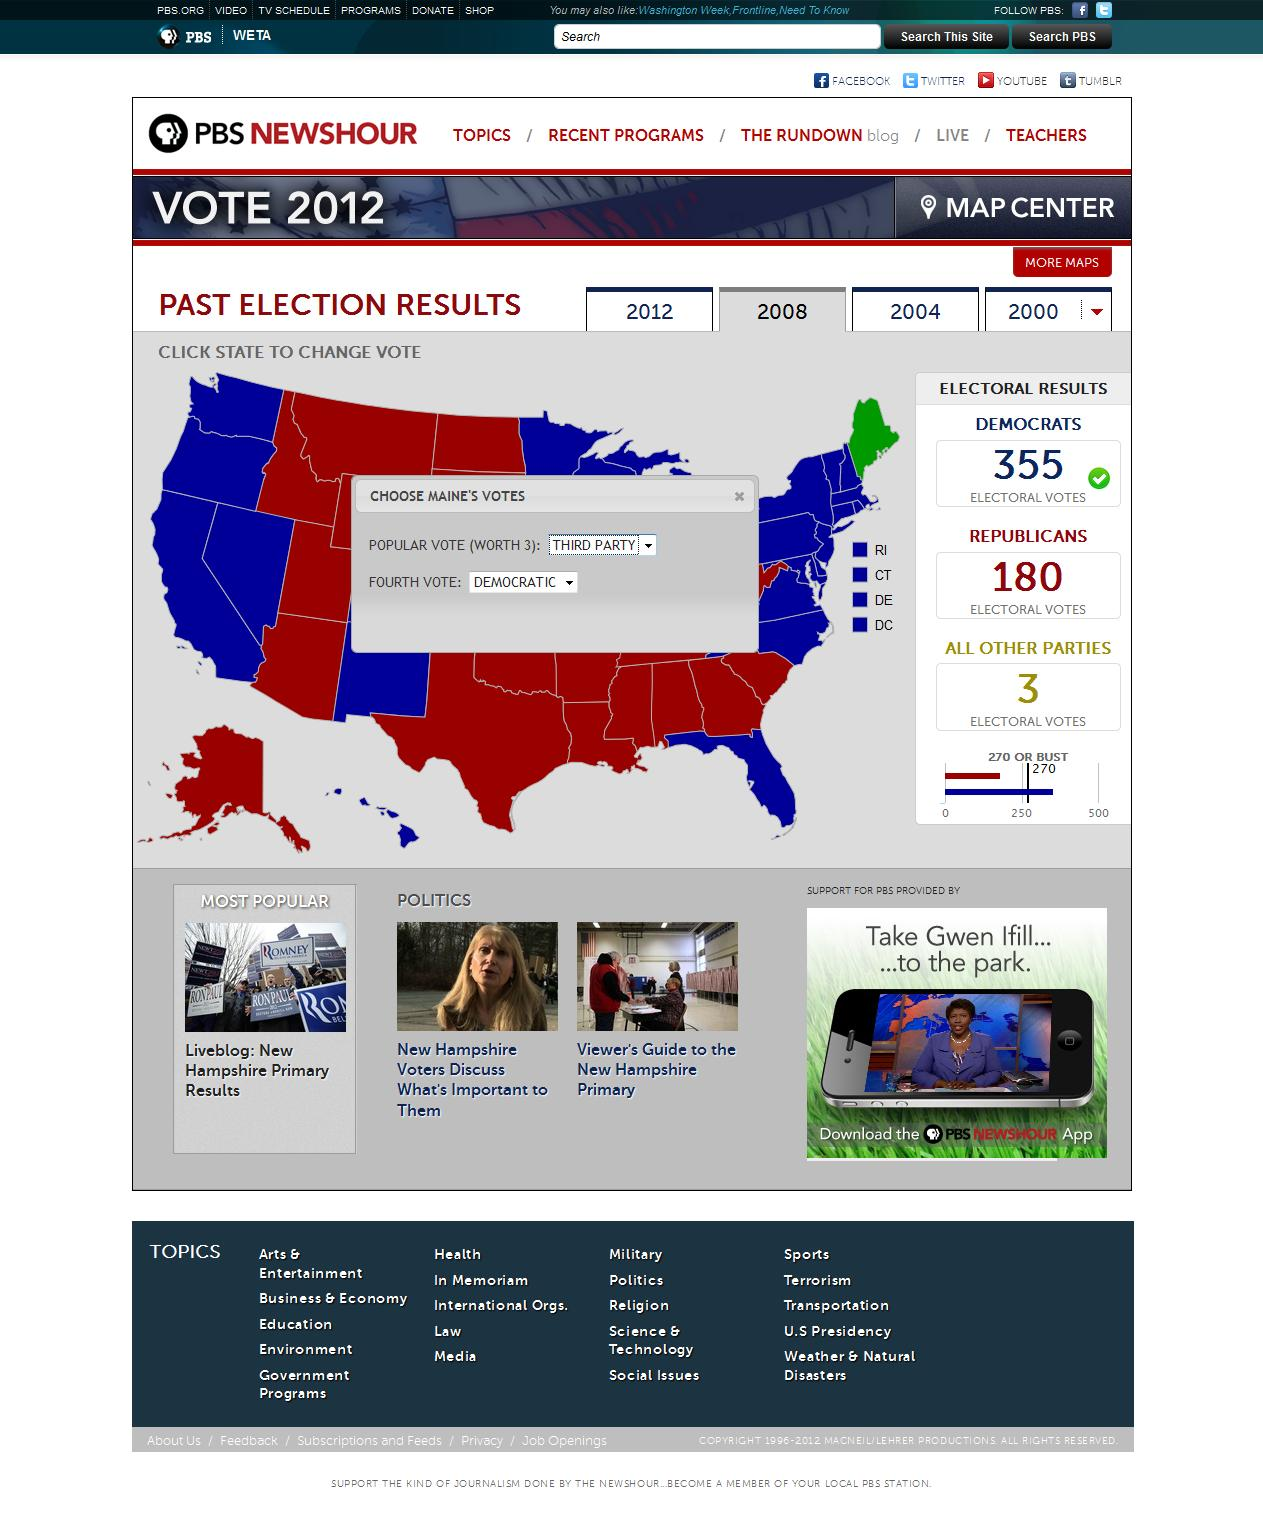 The Electoral College calculator includes general election results back to 1964 and allows users to make their own predictions about how 2012 will play out.